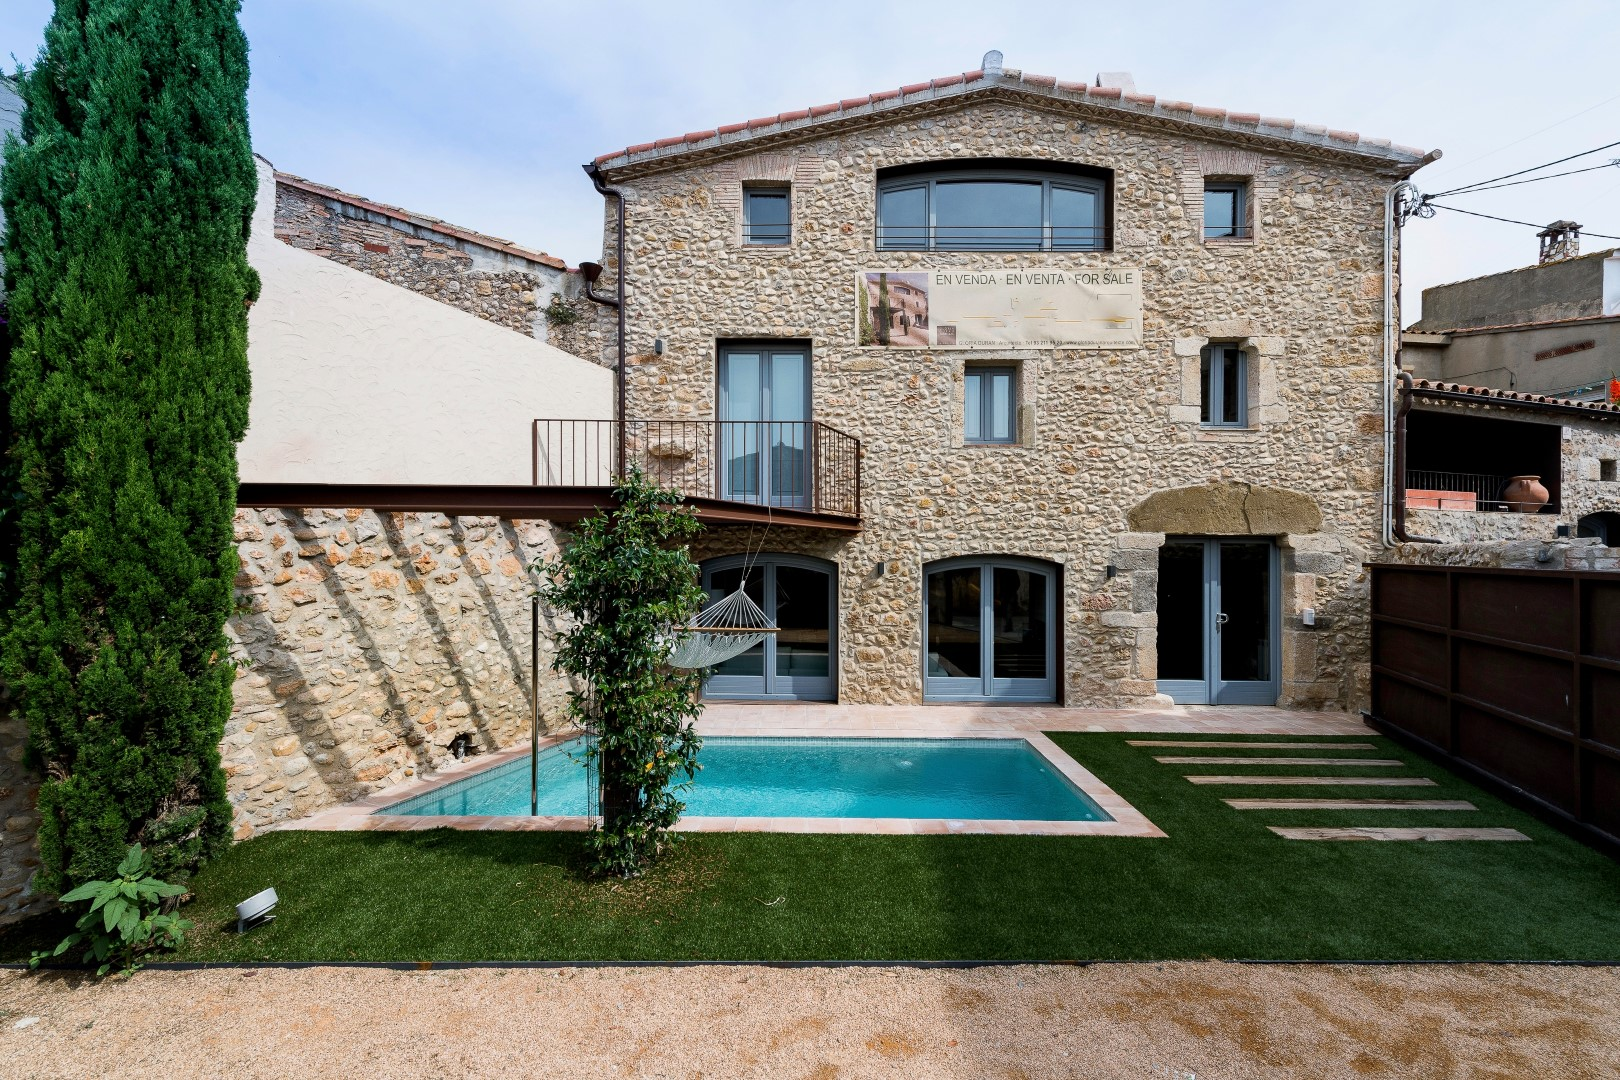 Charming refurbished Village house in the Baix Emporda, Spain